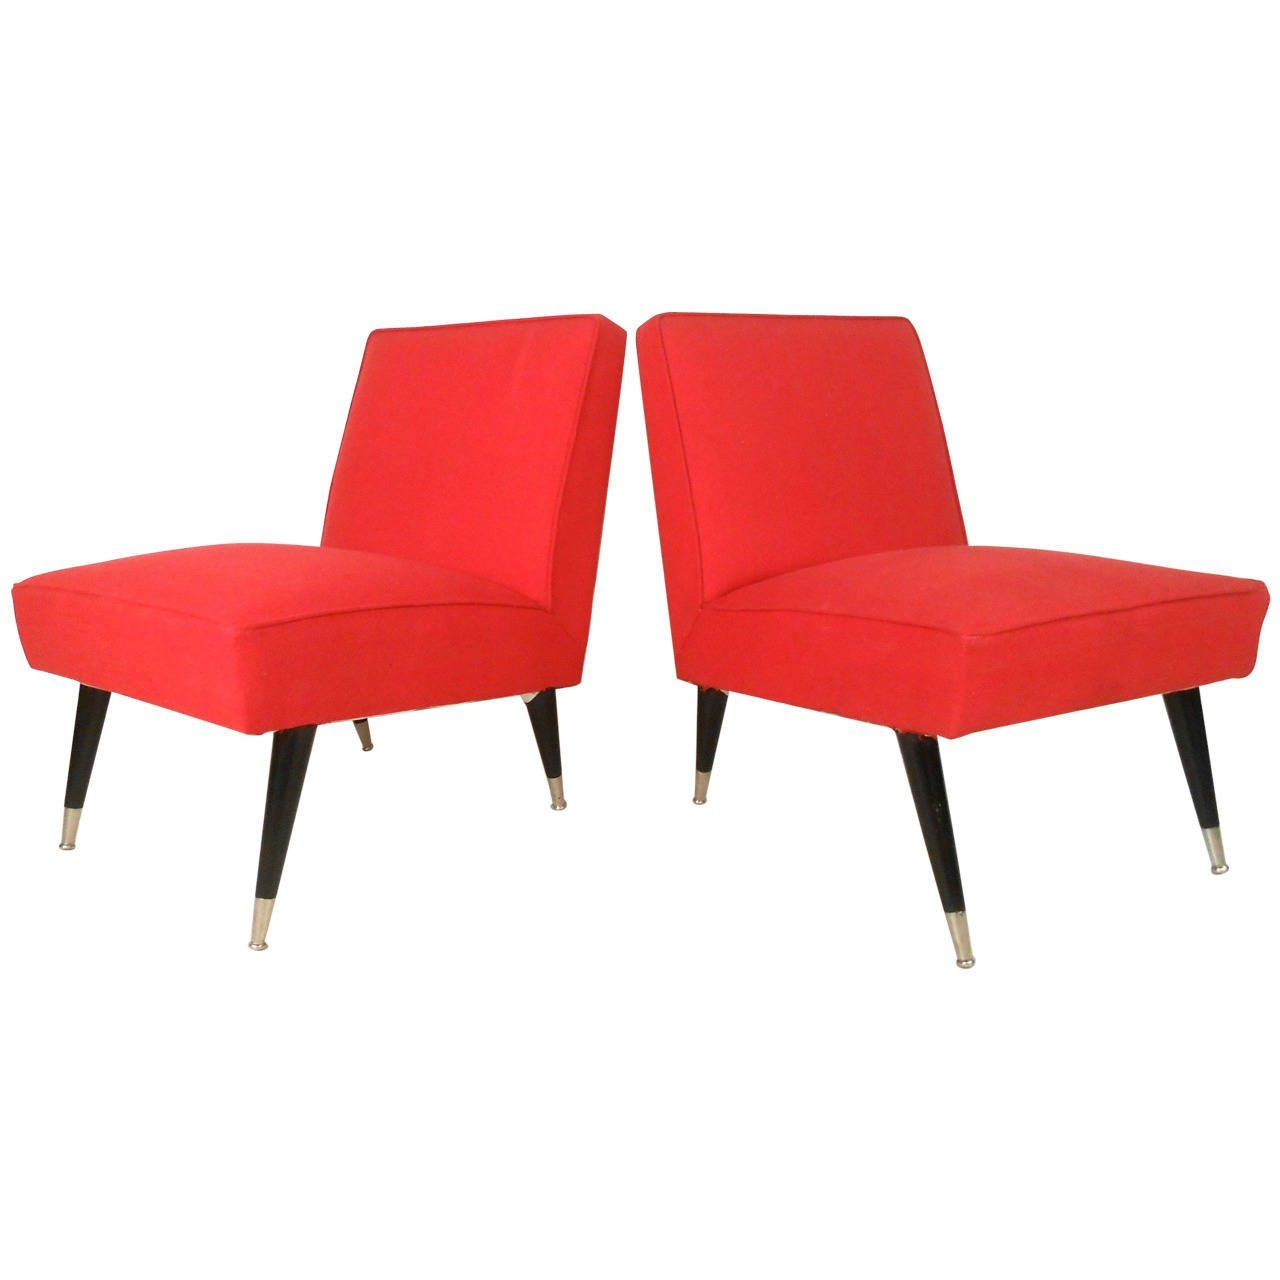 Captivating Pair Mid Century Modern Italian Style Slipper Chairs   From A Unique  Collection Of Antique